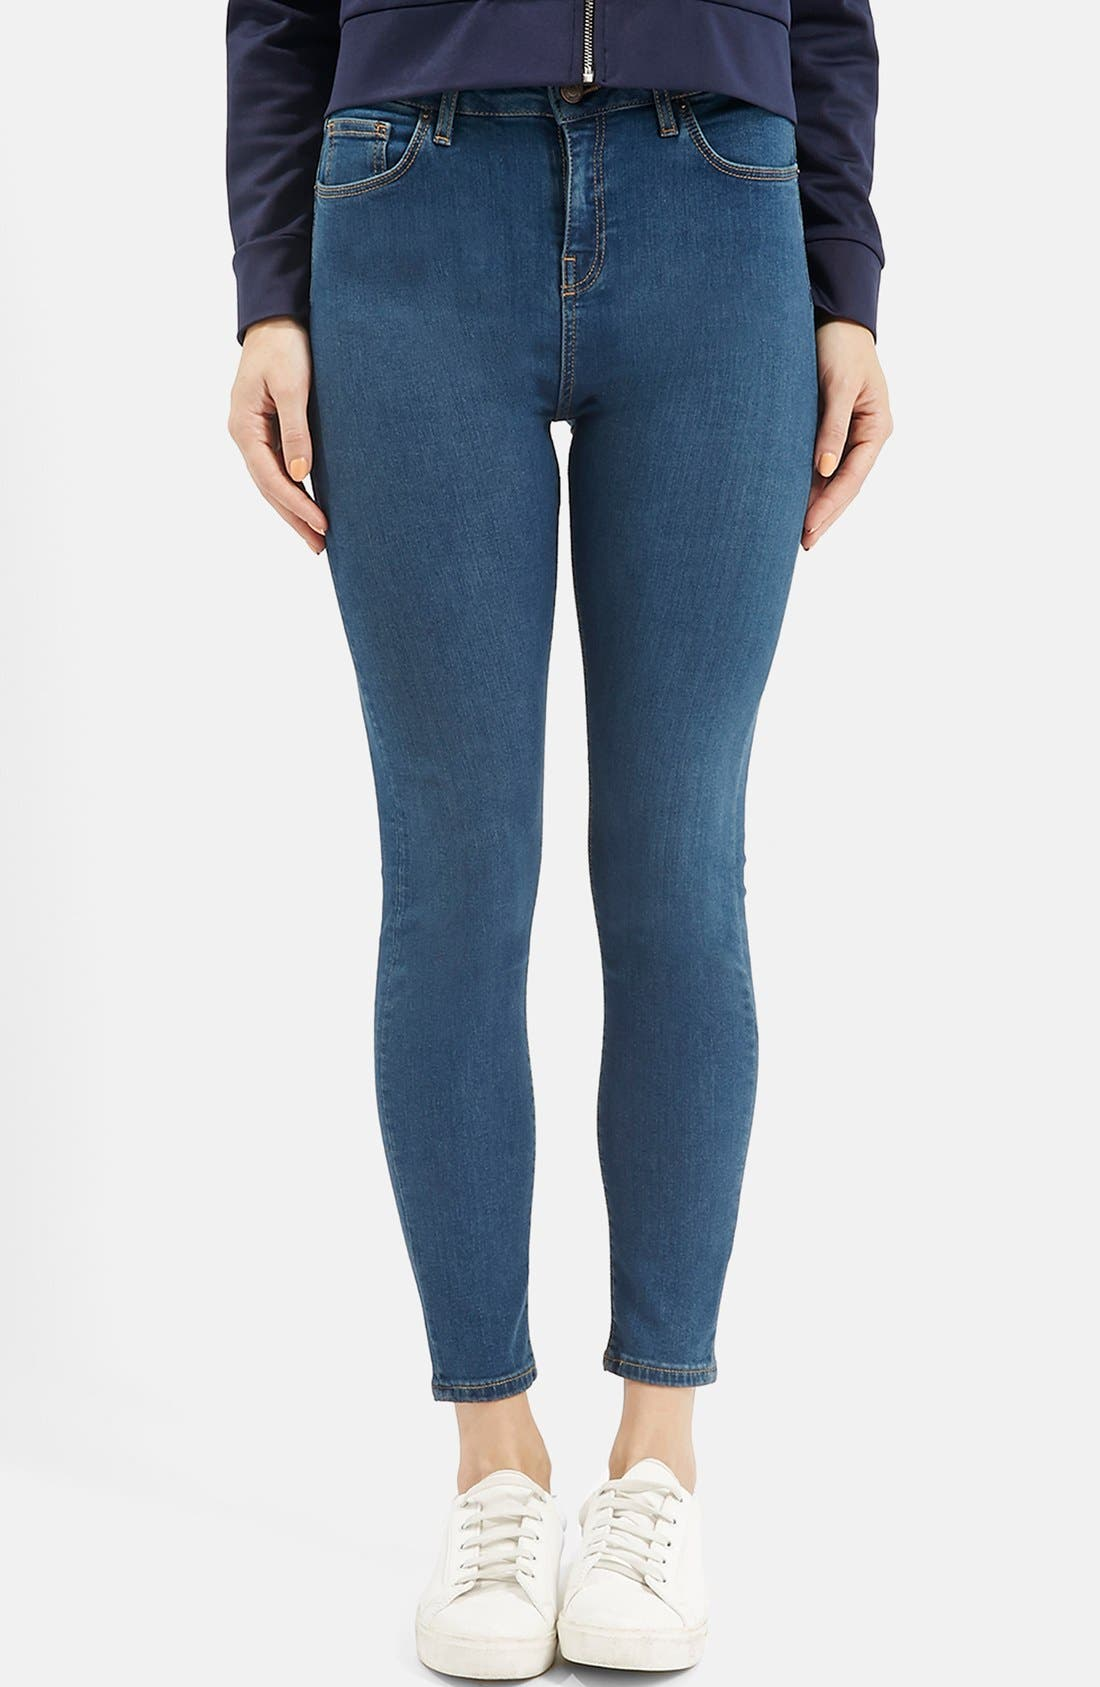 Main Image - Topshop Moto 'Jamie' High Rise Skinny Jeans (Blue)